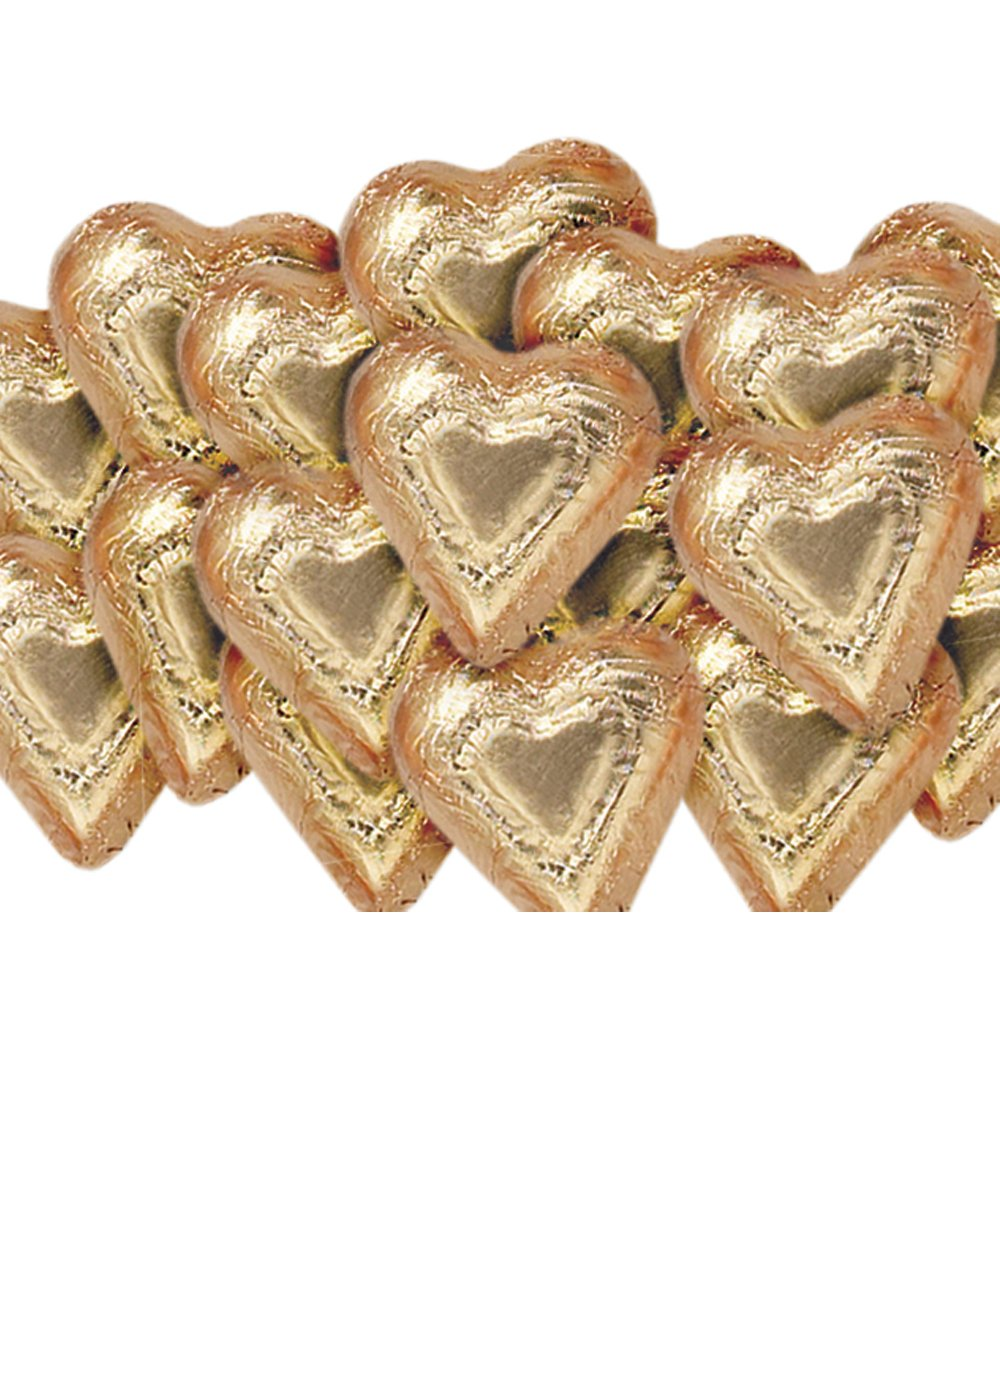 MAD - MINI HEARTS BRONZE DARK